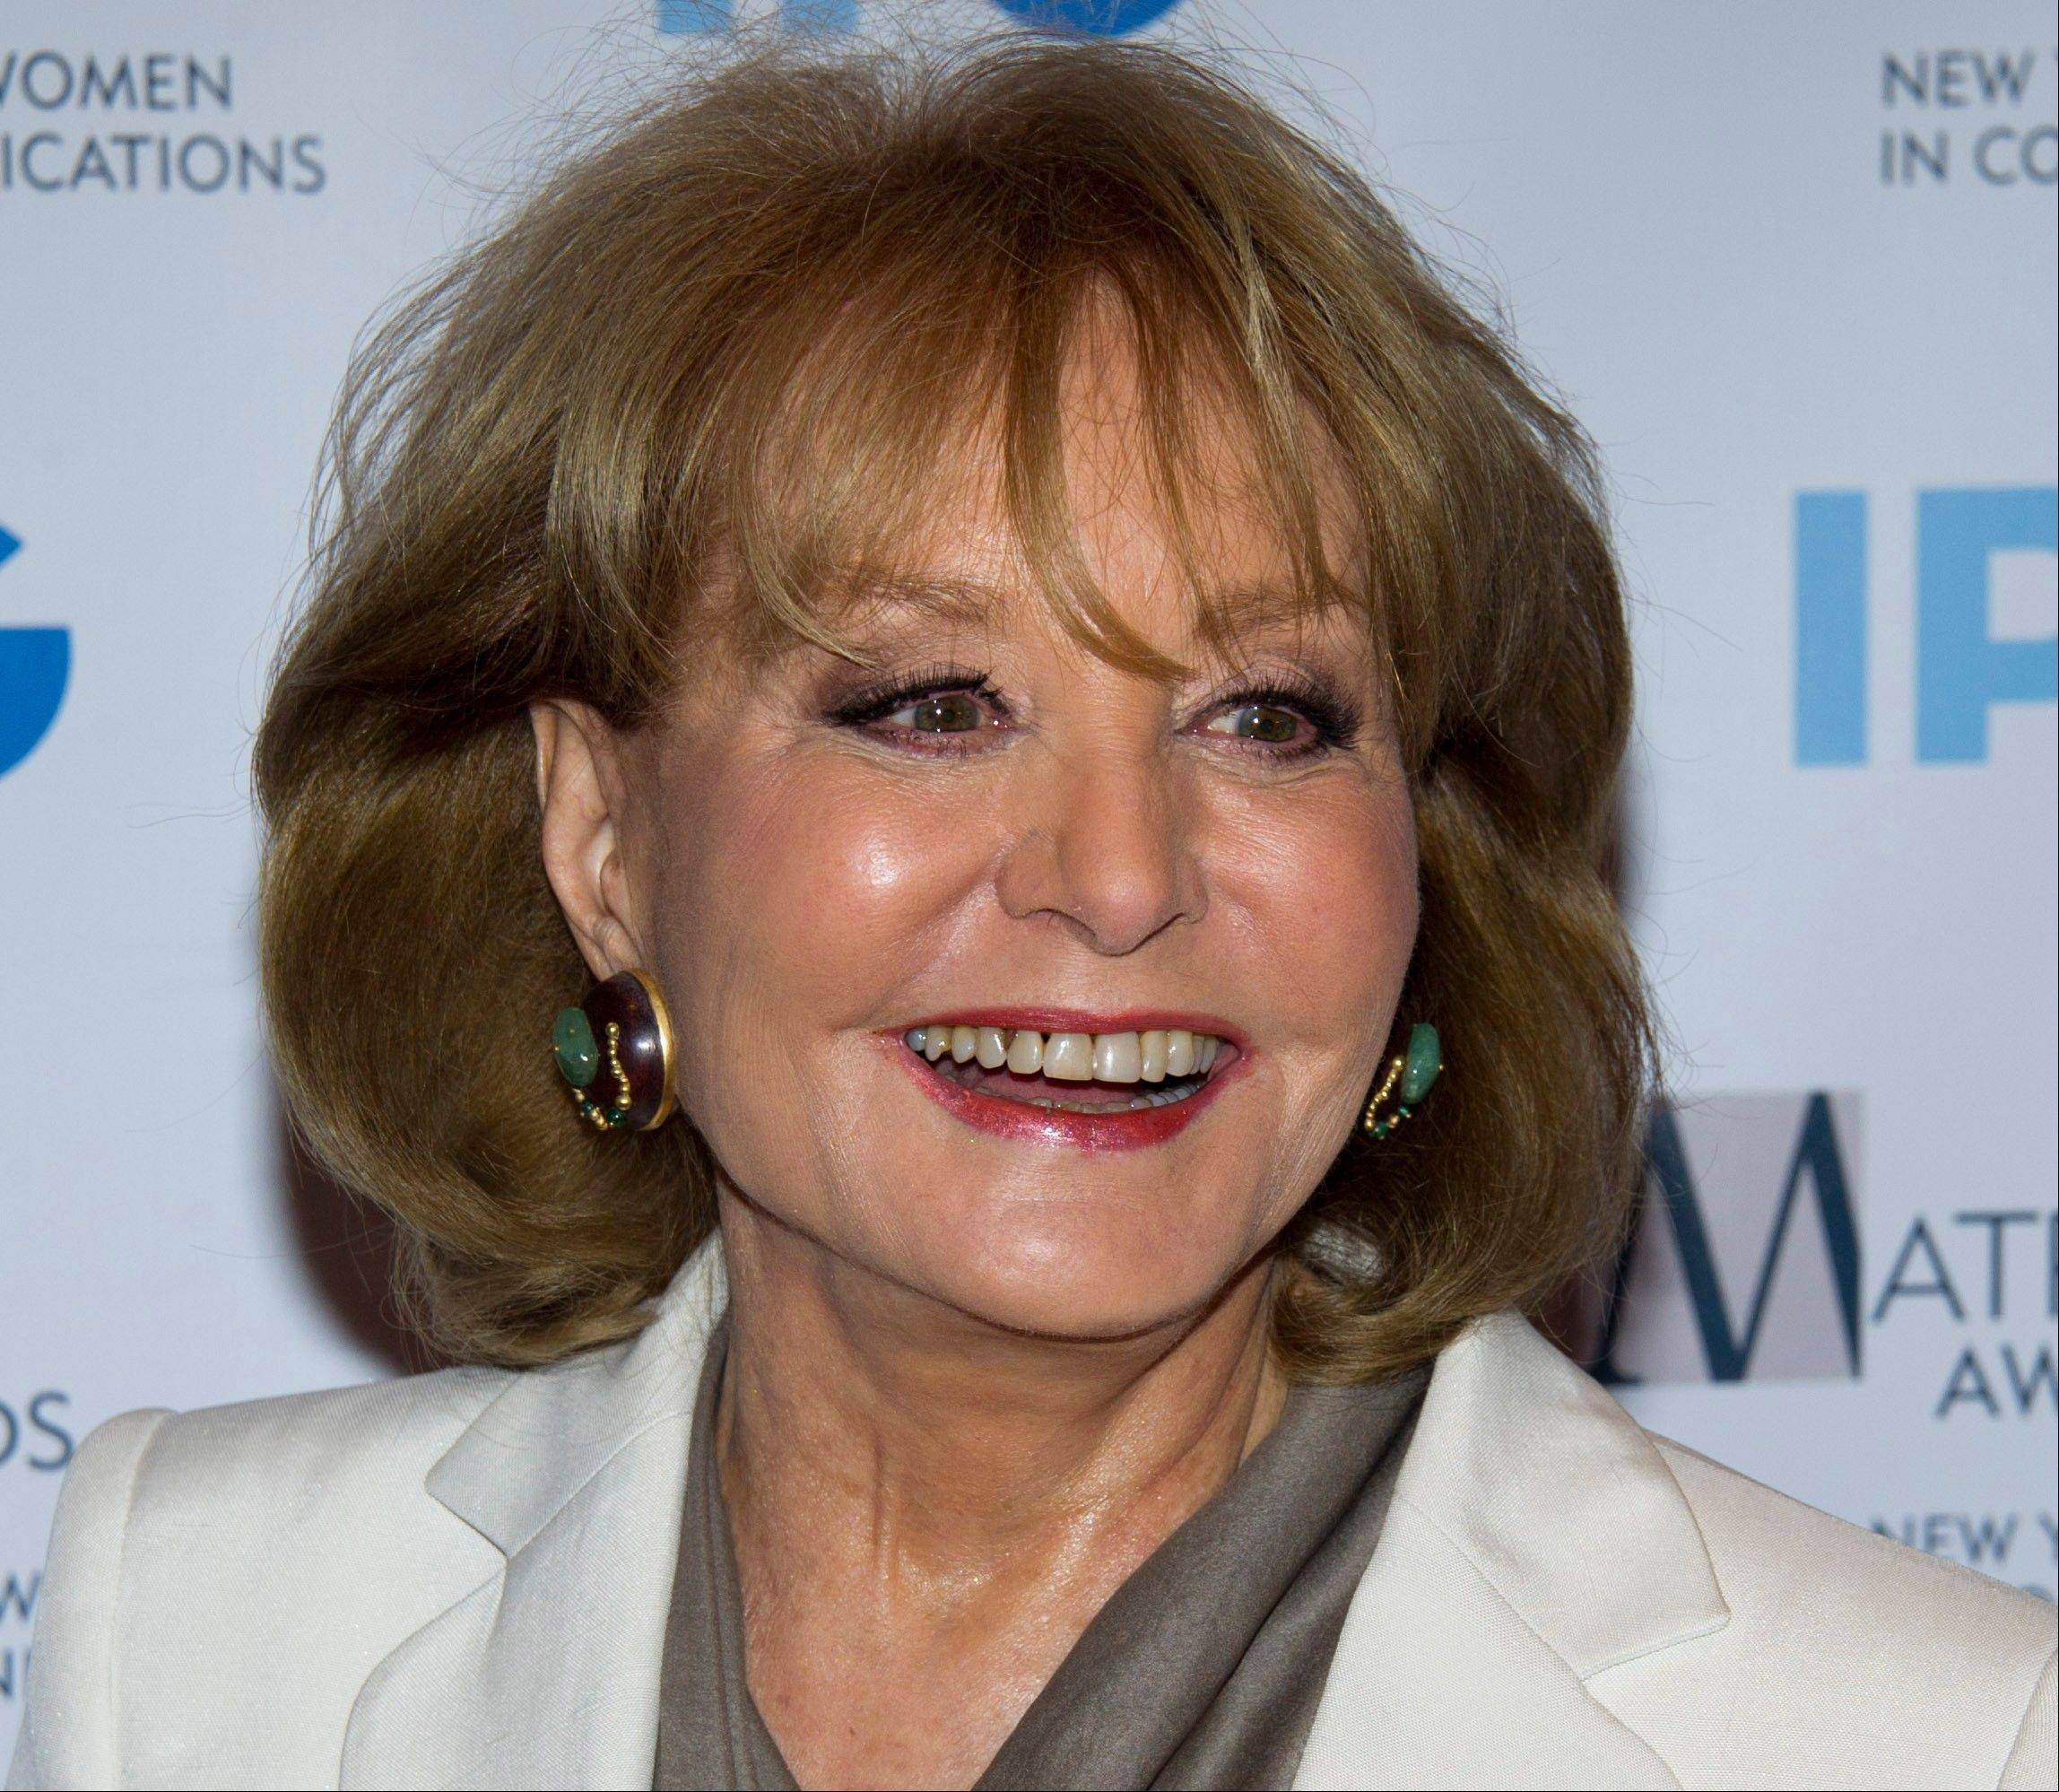 In this Monday, April 23, 2012 photo, veteran ABC newswoman Barbara Walters arrives to the Matrix Awards in New York. Walters has fallen at an inauguration party in Washington and has been hospitalized, according to an ABC News spokesman, Sunday.